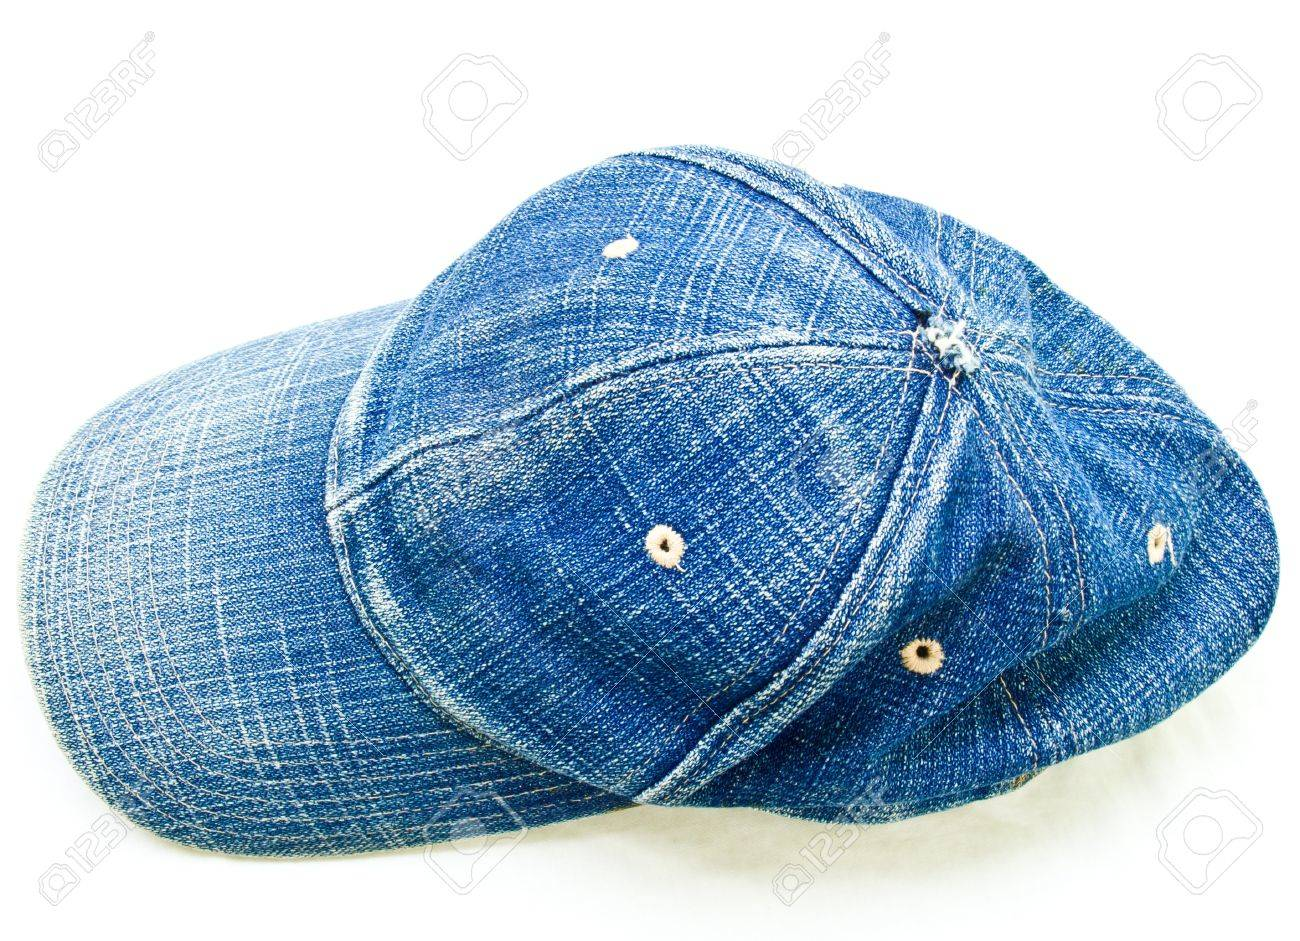 Stock Photo - Top view of used blue jean cap isolated on white background 91a27e3a6de